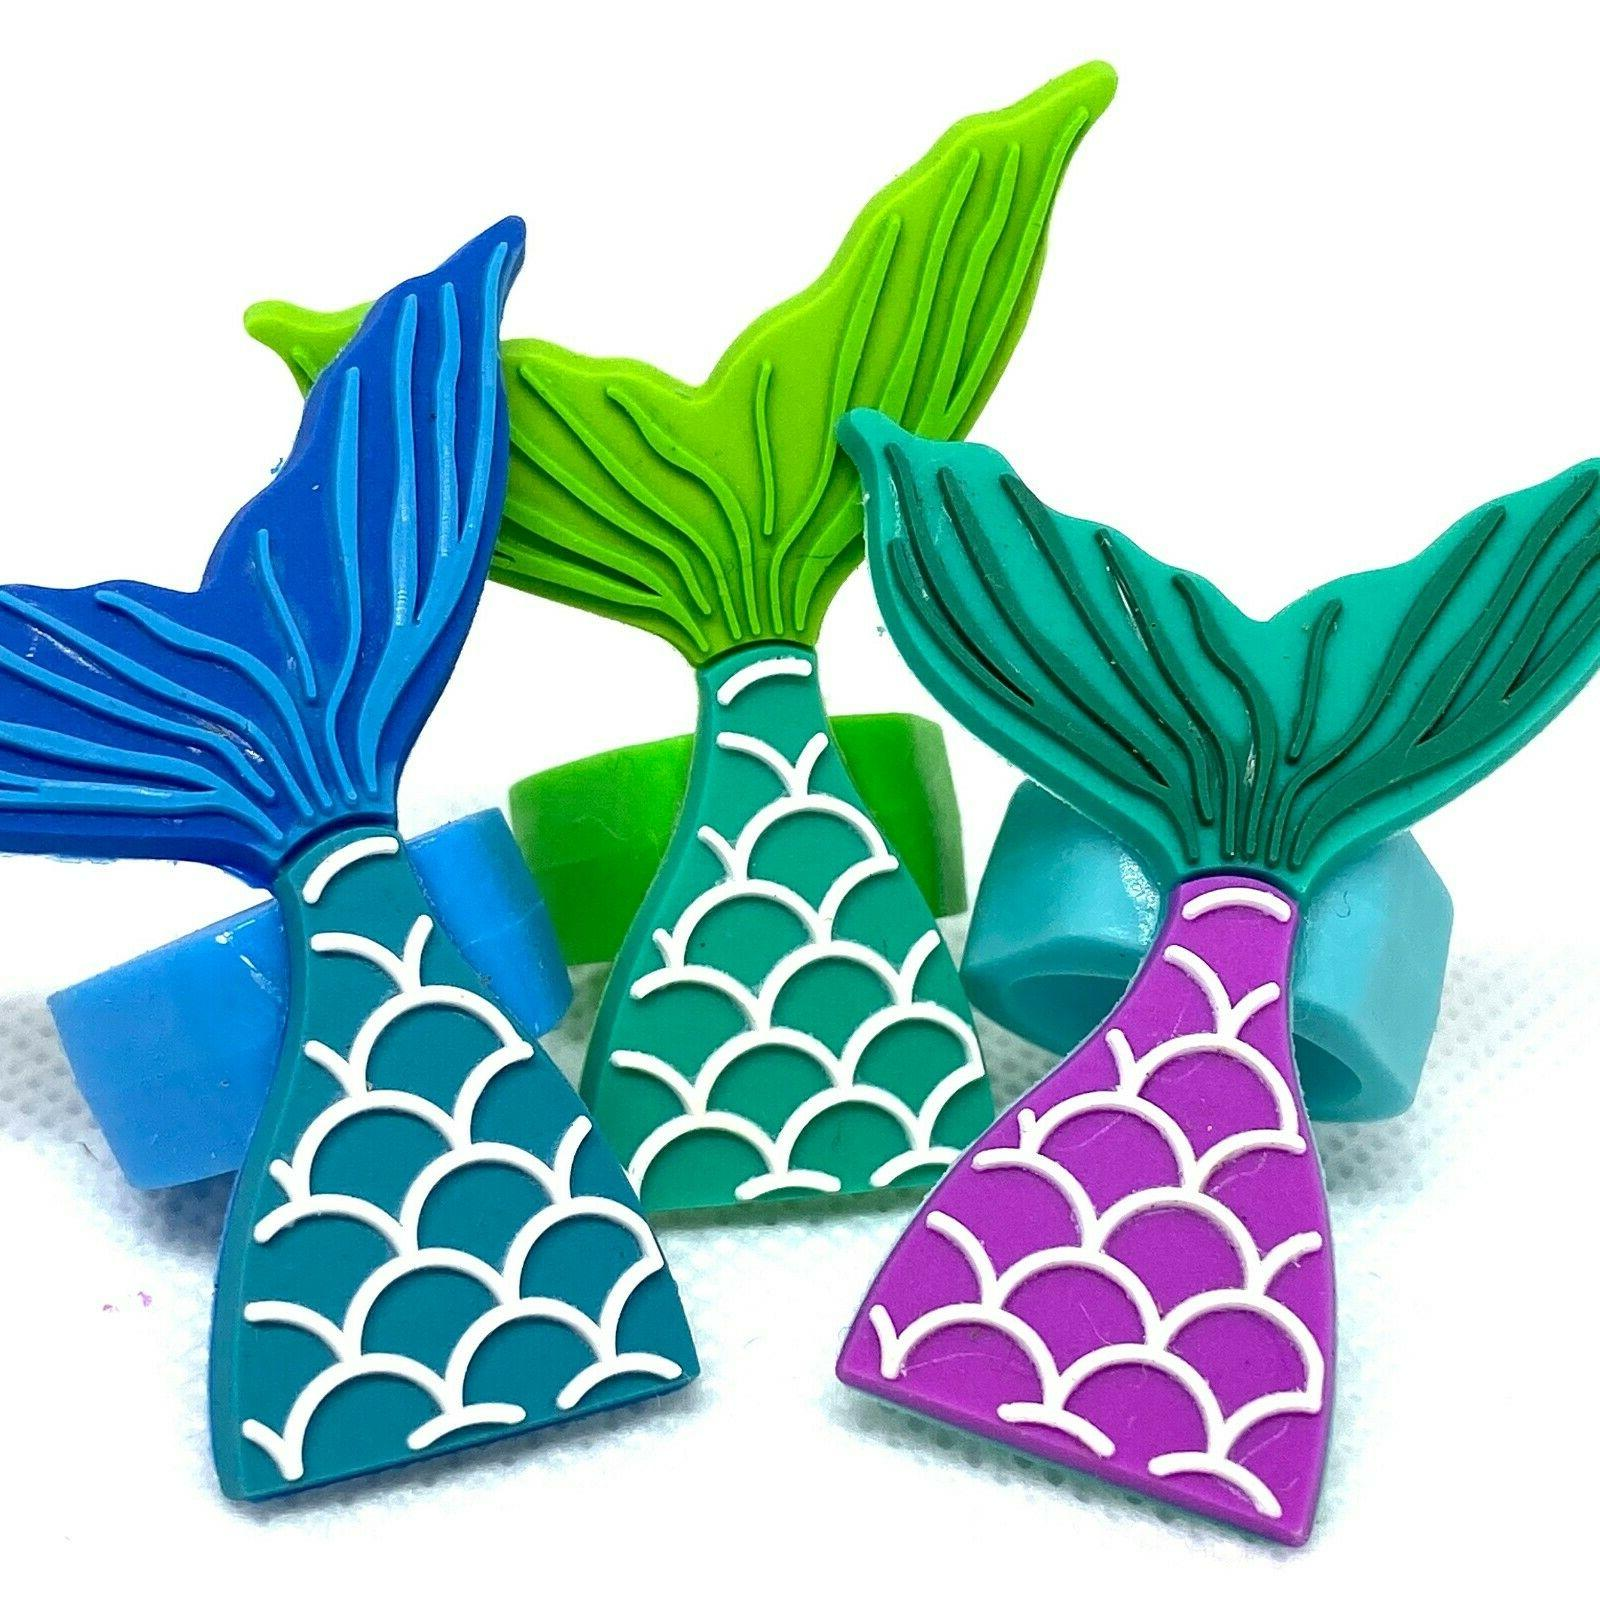 Mermaid Cupcake Toppers Cake Decorations Party Favors Set of